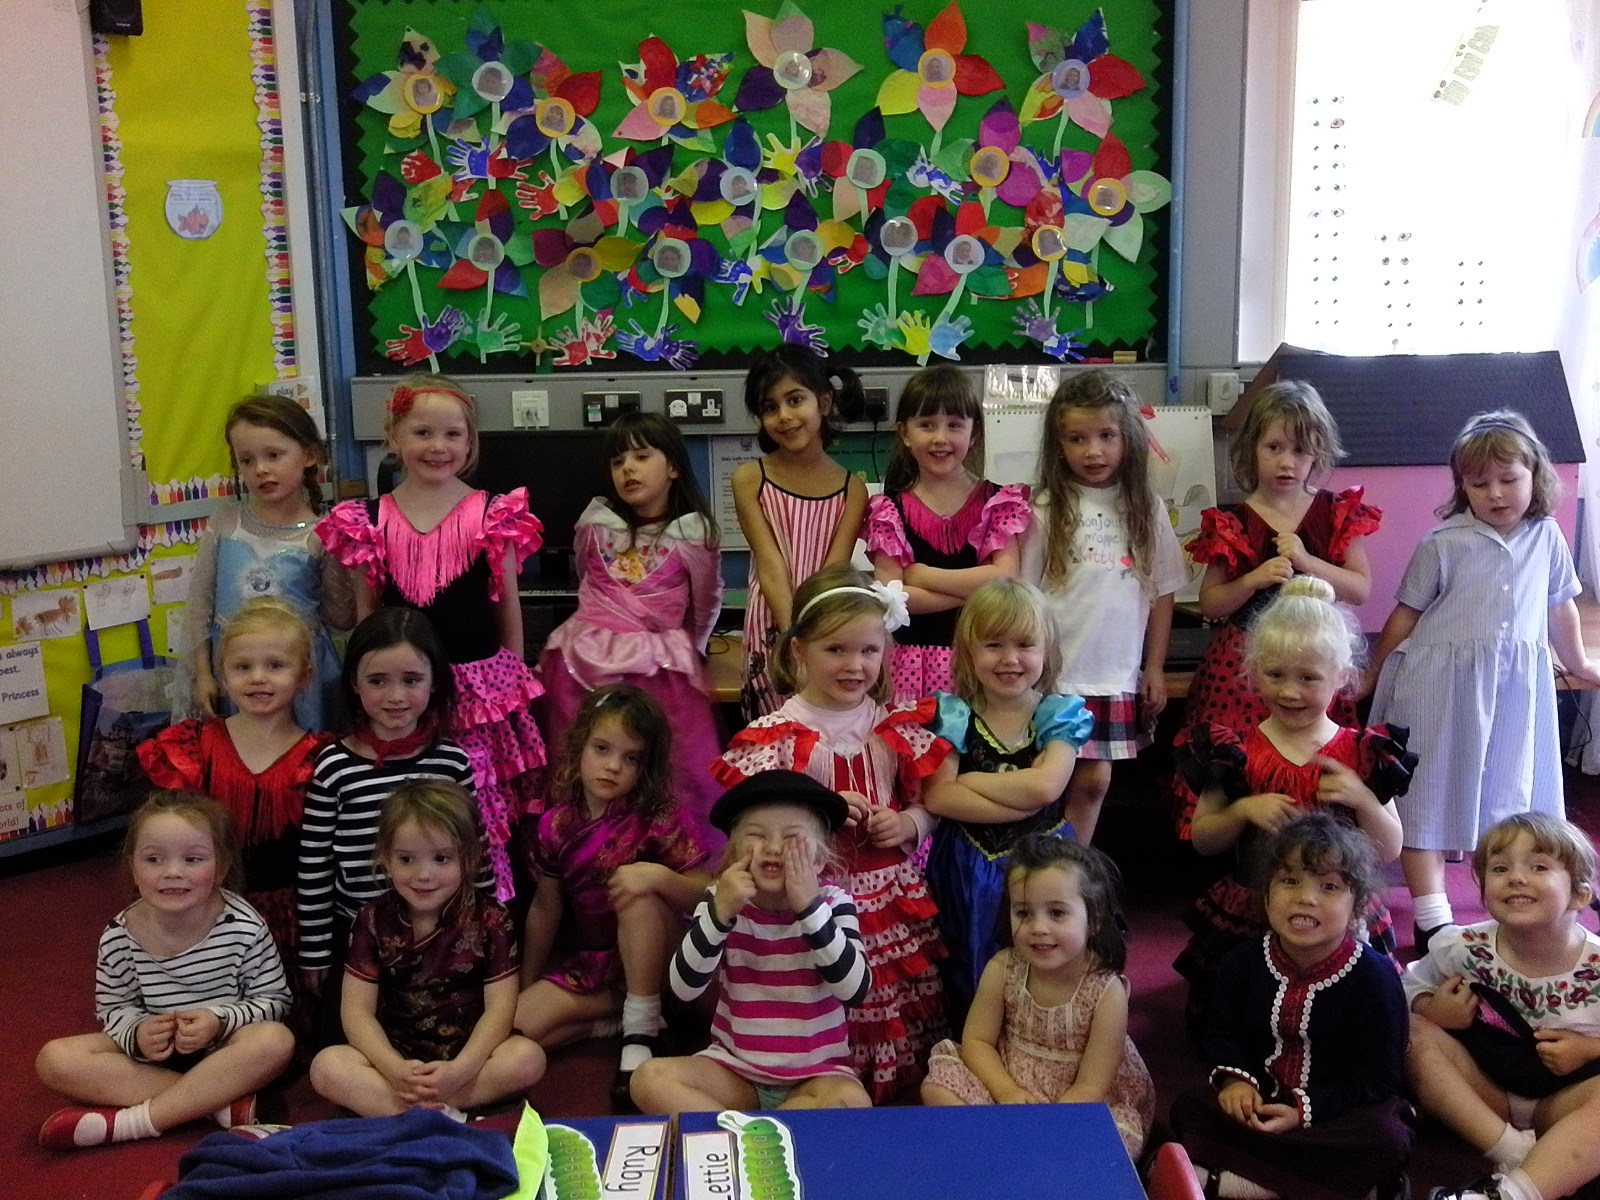 Here we are celebrating World Languages Day. What fabulous costumes!